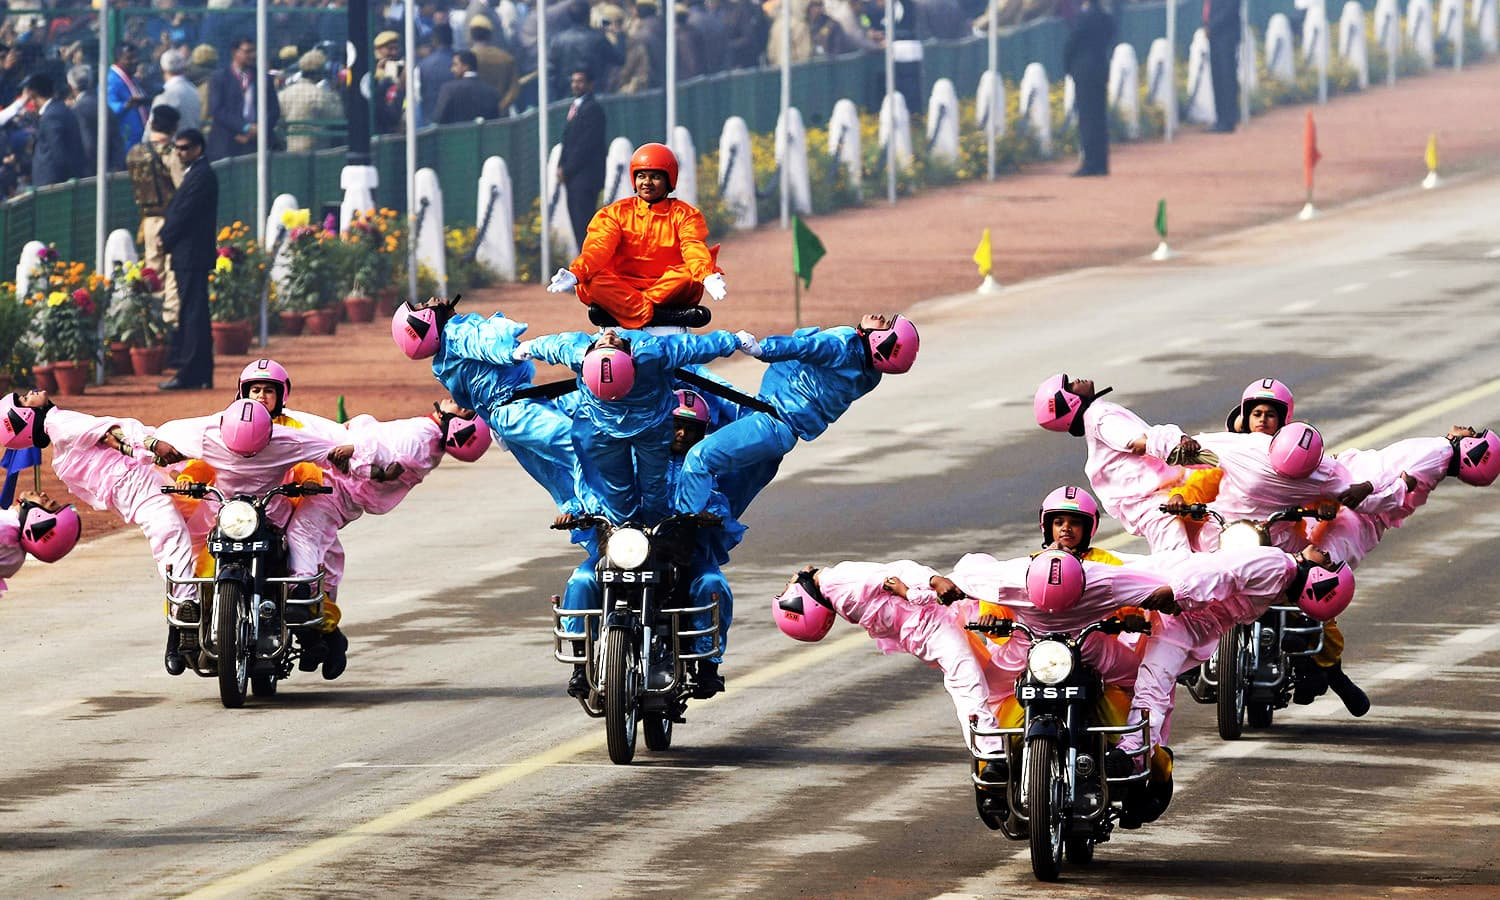 The Indian Border Security Force women's motorcycle team 'Seema Bhawani' performs in New Delhi.—AFP